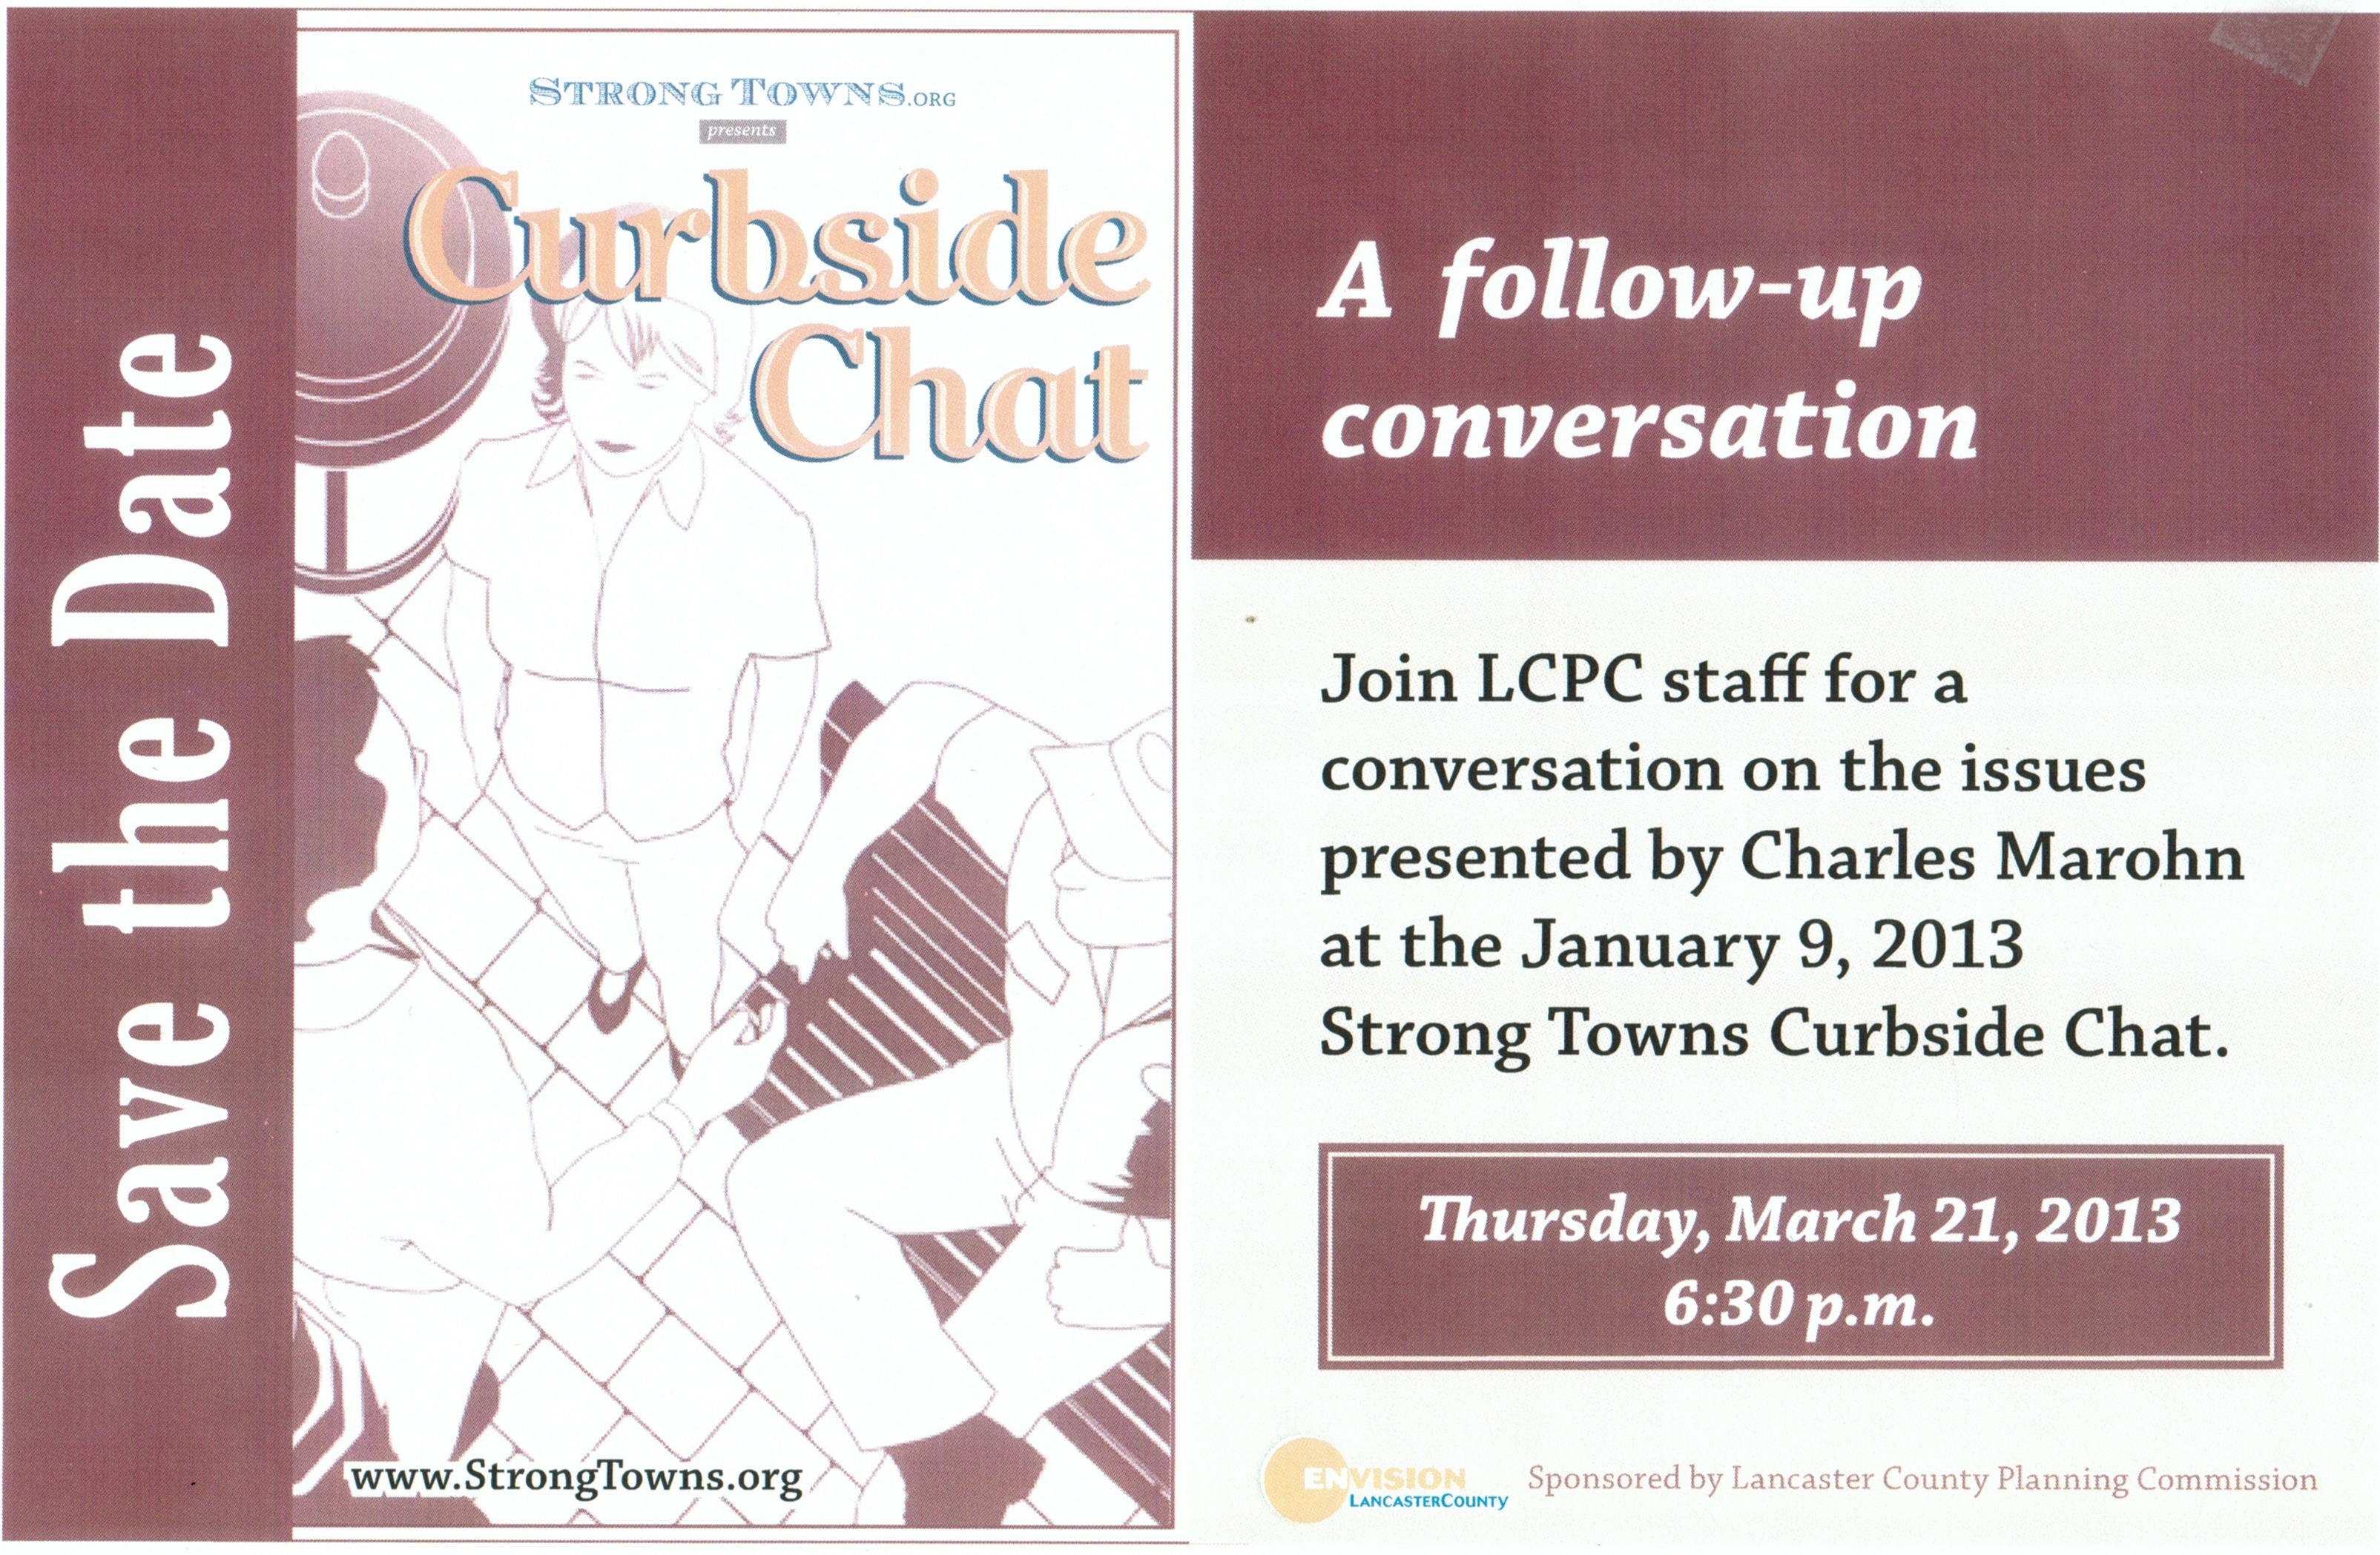 Curbside Chat Follow-UP